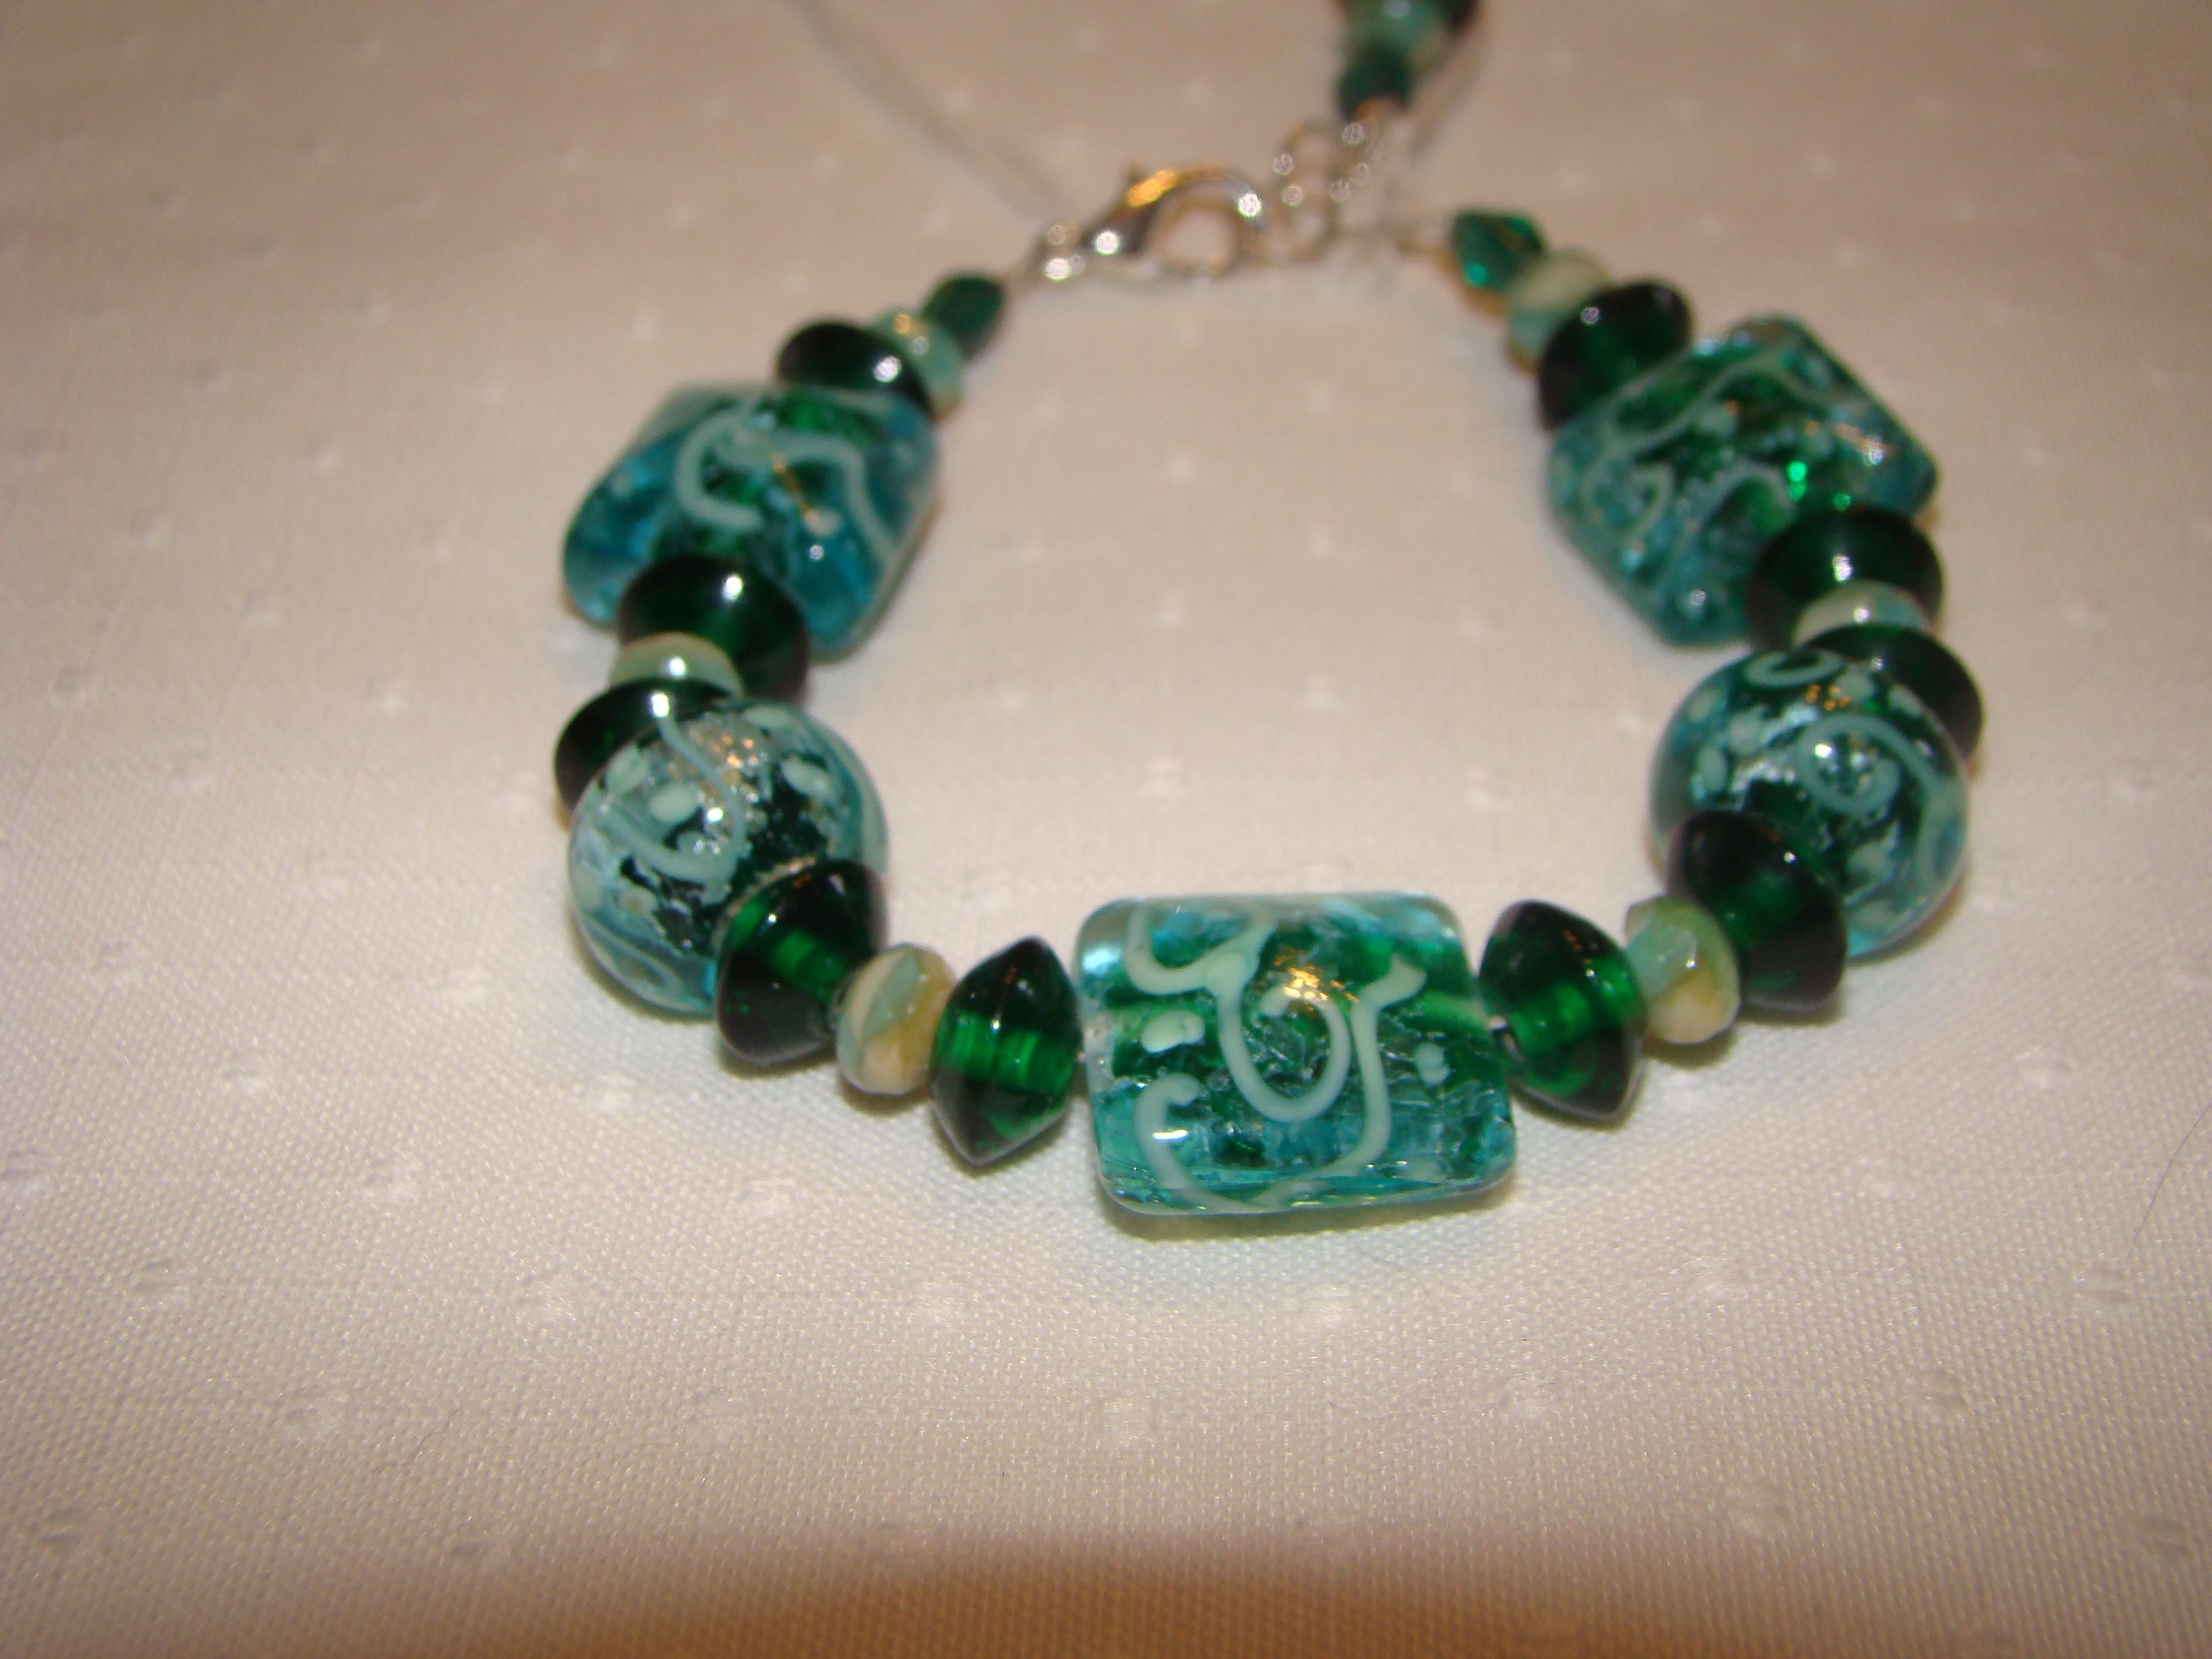 Green and teal glass  lampwork  bracelet.  Handmade by Bonnie Norberg